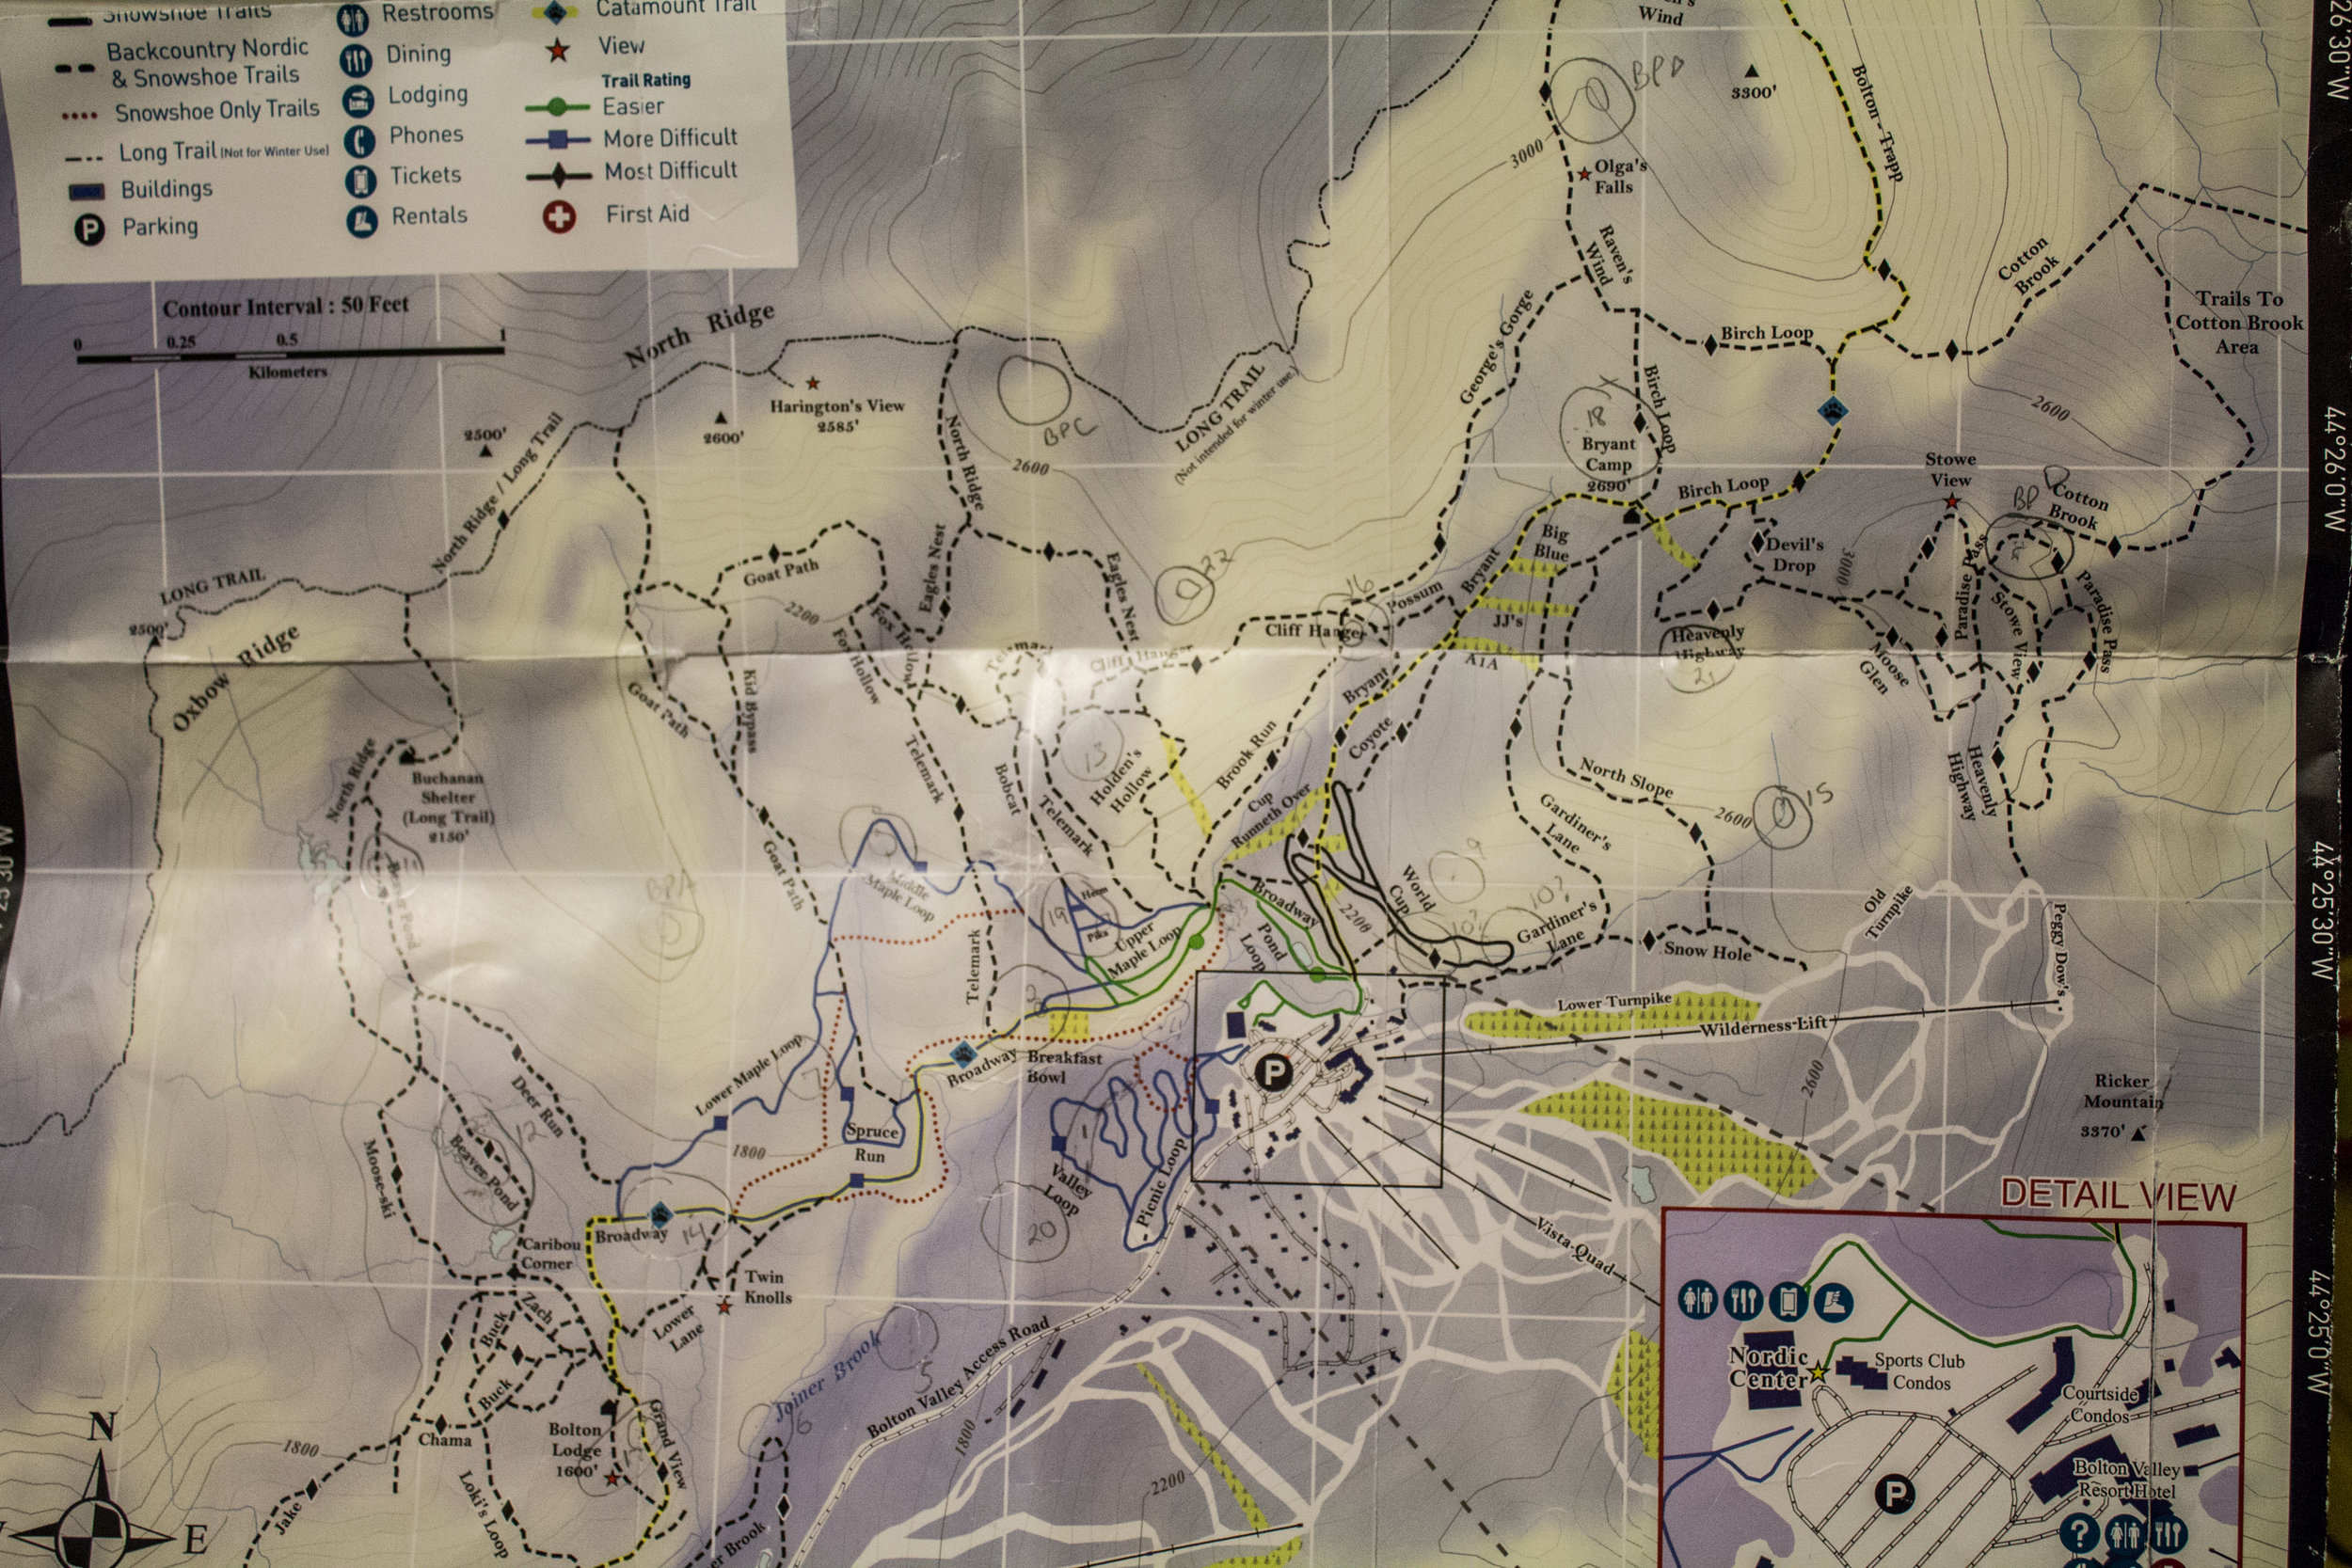 Trail map of Bolton Valley Nordic Center